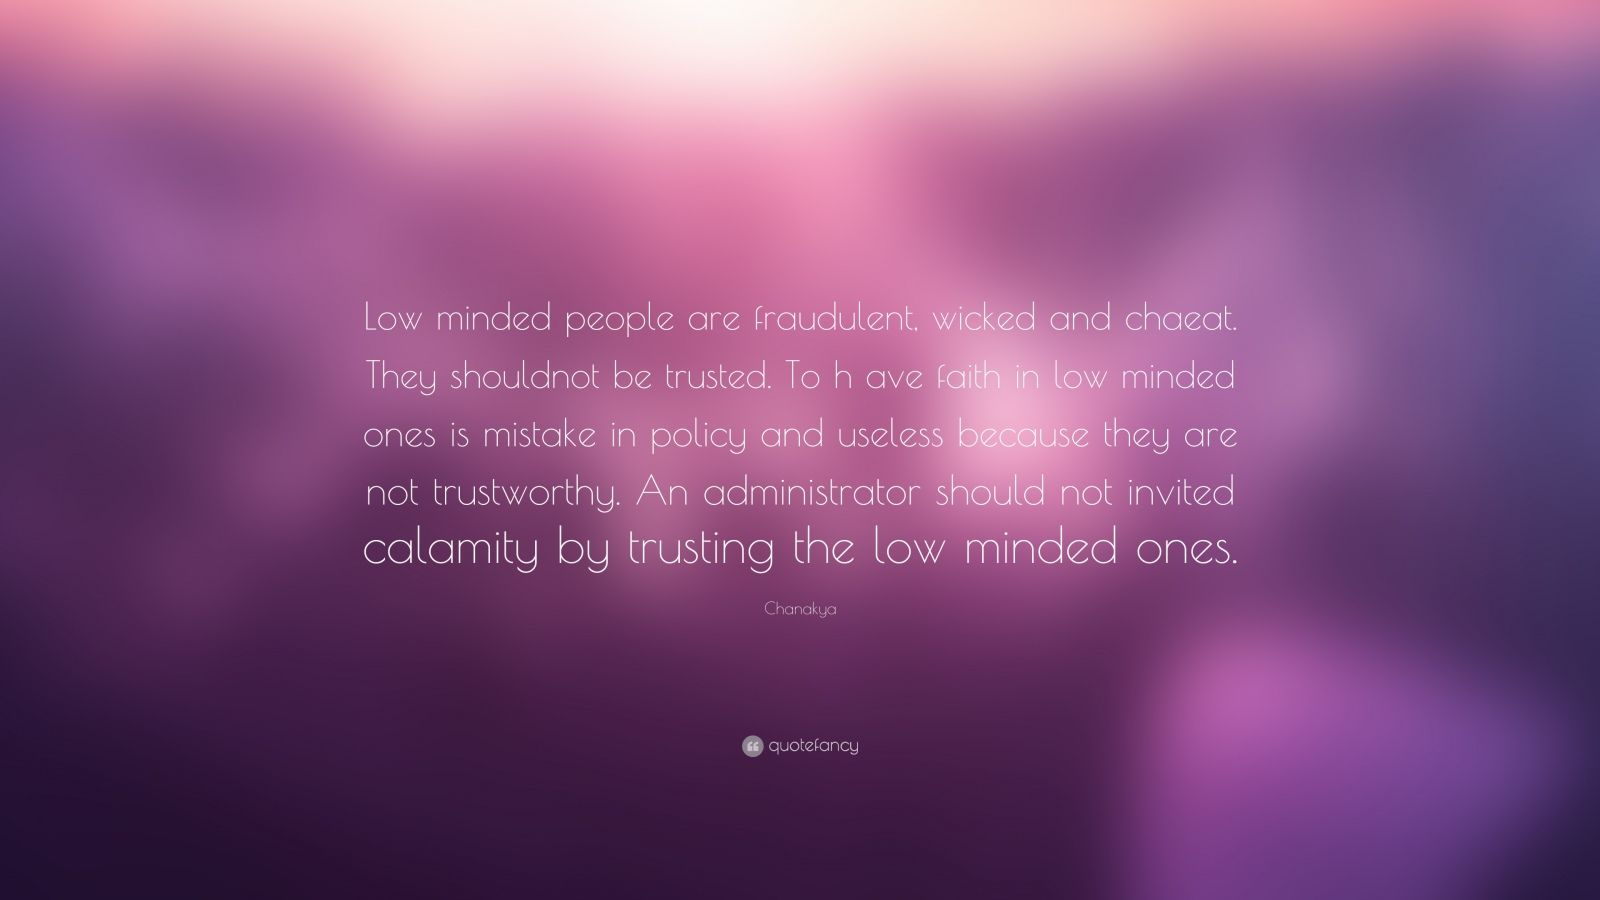 "Chanakya Quote: ""Low minded people are fraudulent, wicked and chaeat. They shouldnot be trusted. To h ave faith in low minded ones is mistake in policy and useless because they are not trustworthy. An administrator should not invited calamity by trusting the low minded ones."""